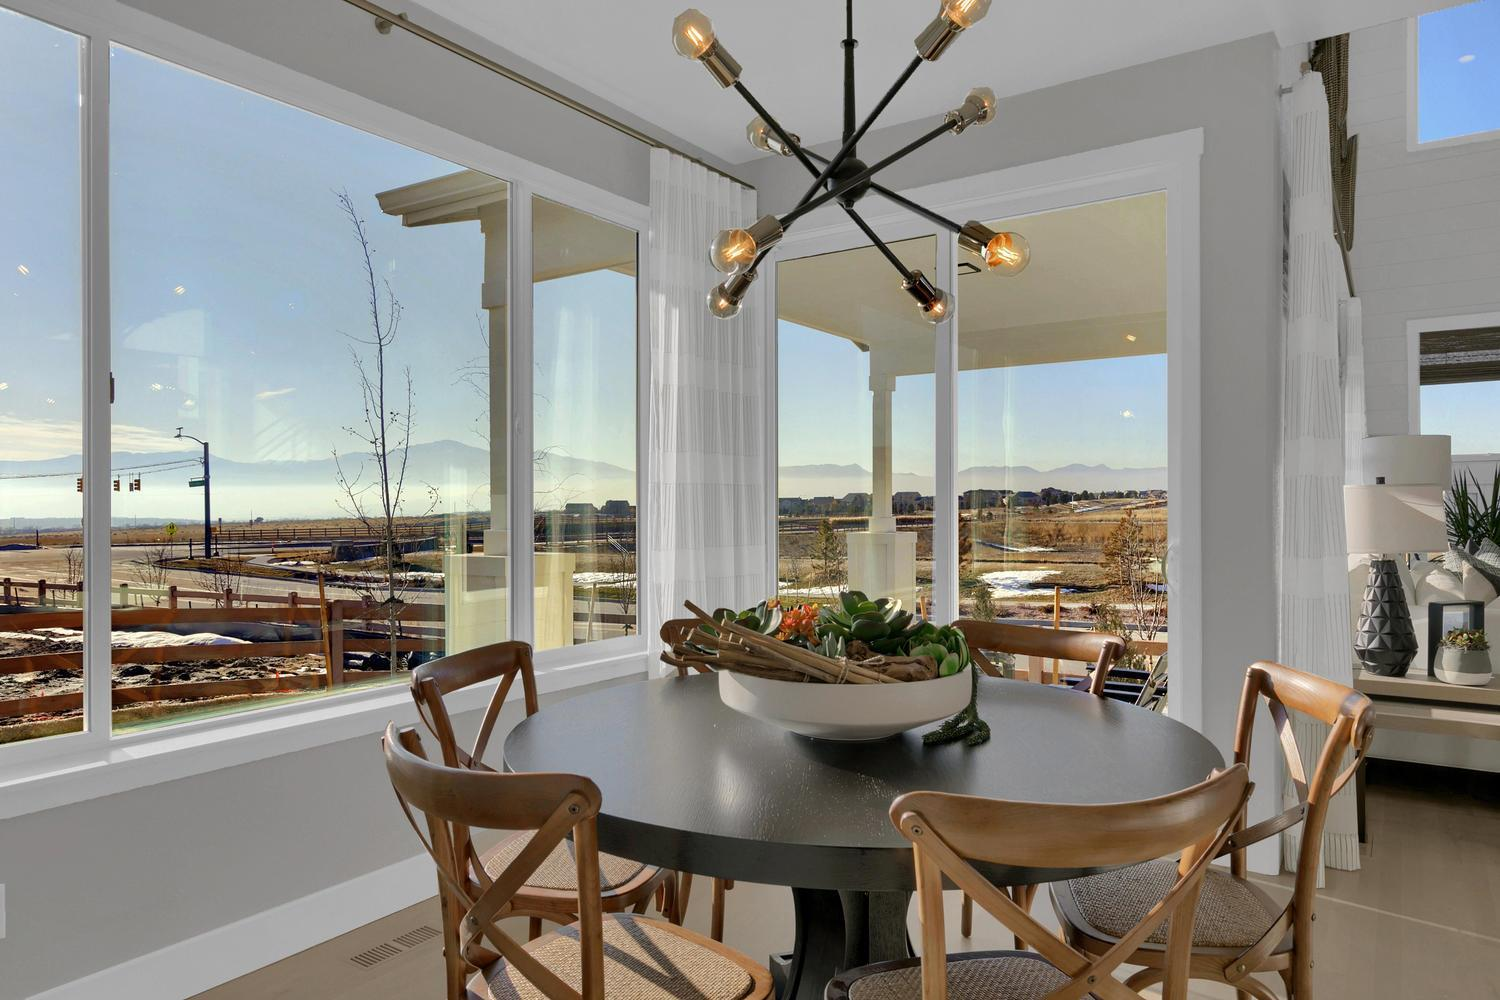 Kitchen featured in the Culebra By Keller Homes, A Toll Bros. Co. in Colorado Springs, CO